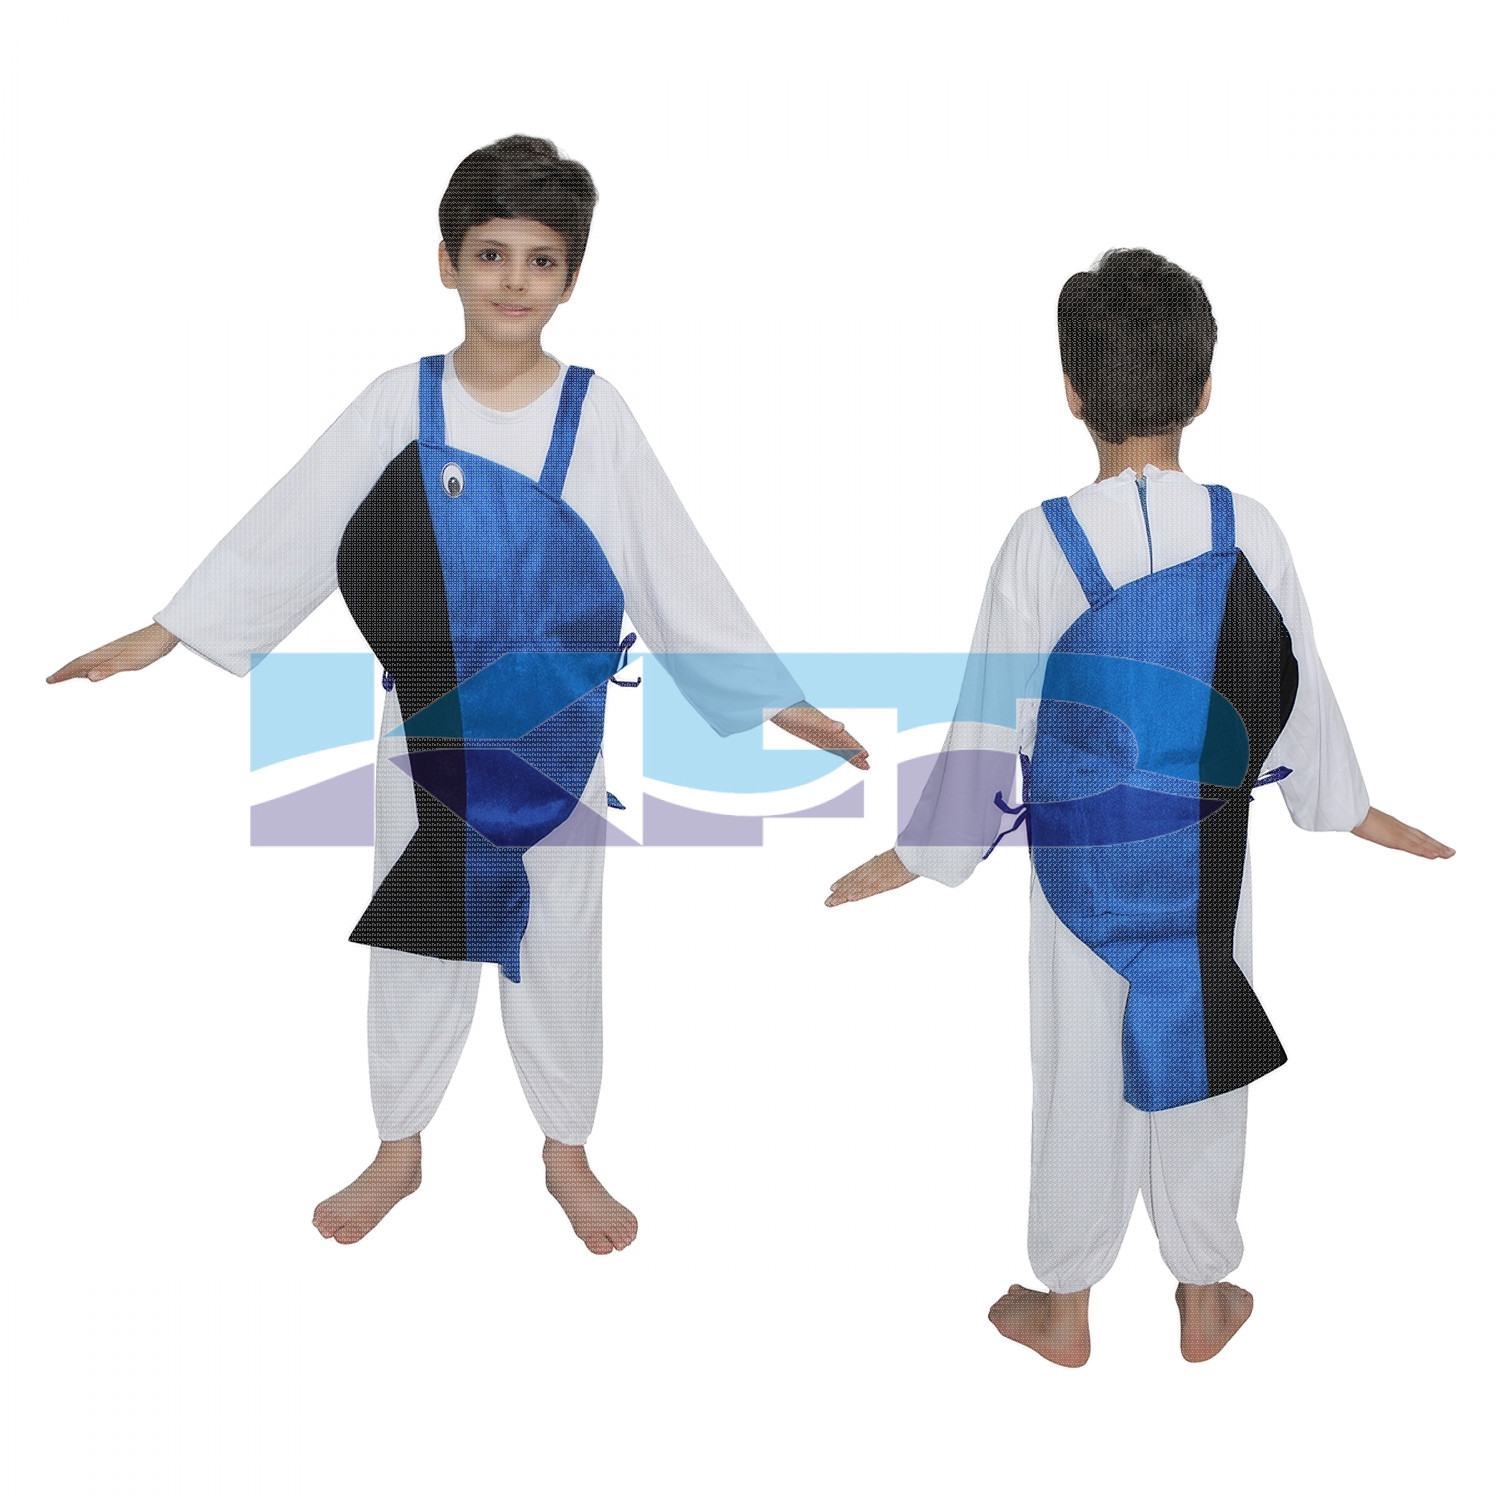 Whale Fish fancy dress for kids,Insect Costume for School Annual function/Theme Party/Competition/Stage Shows Dress